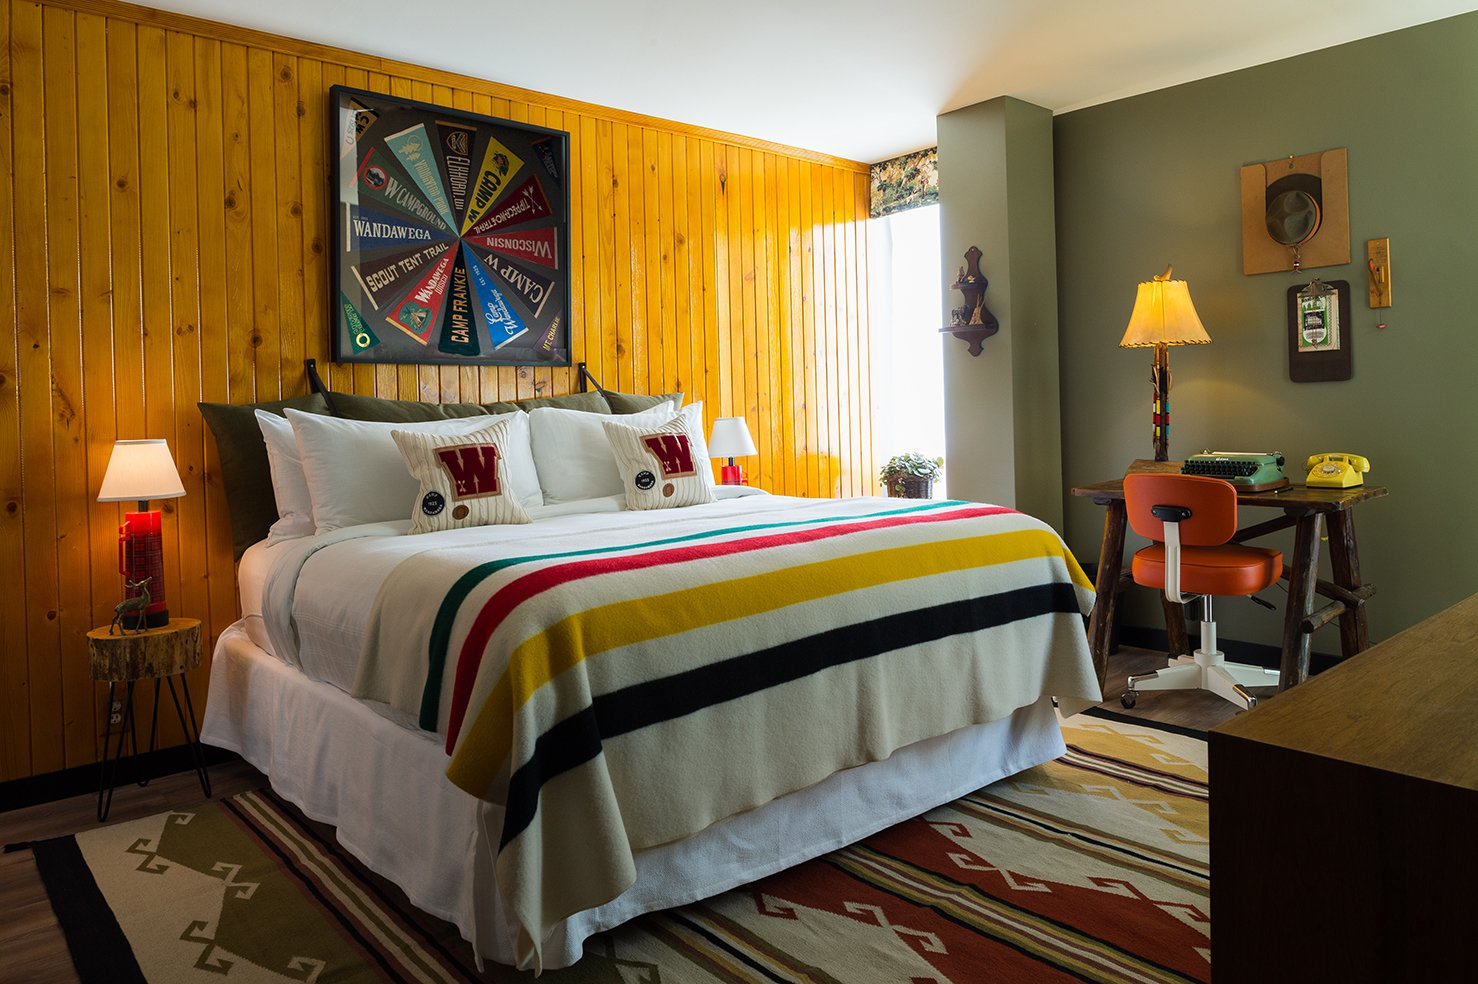 The idea for the custom room comes from Camp Wandawega's line for Land of Nod, which celebrates the whimsical vintage aesthetic of the retreat. A former Prohibition speakeasy once called